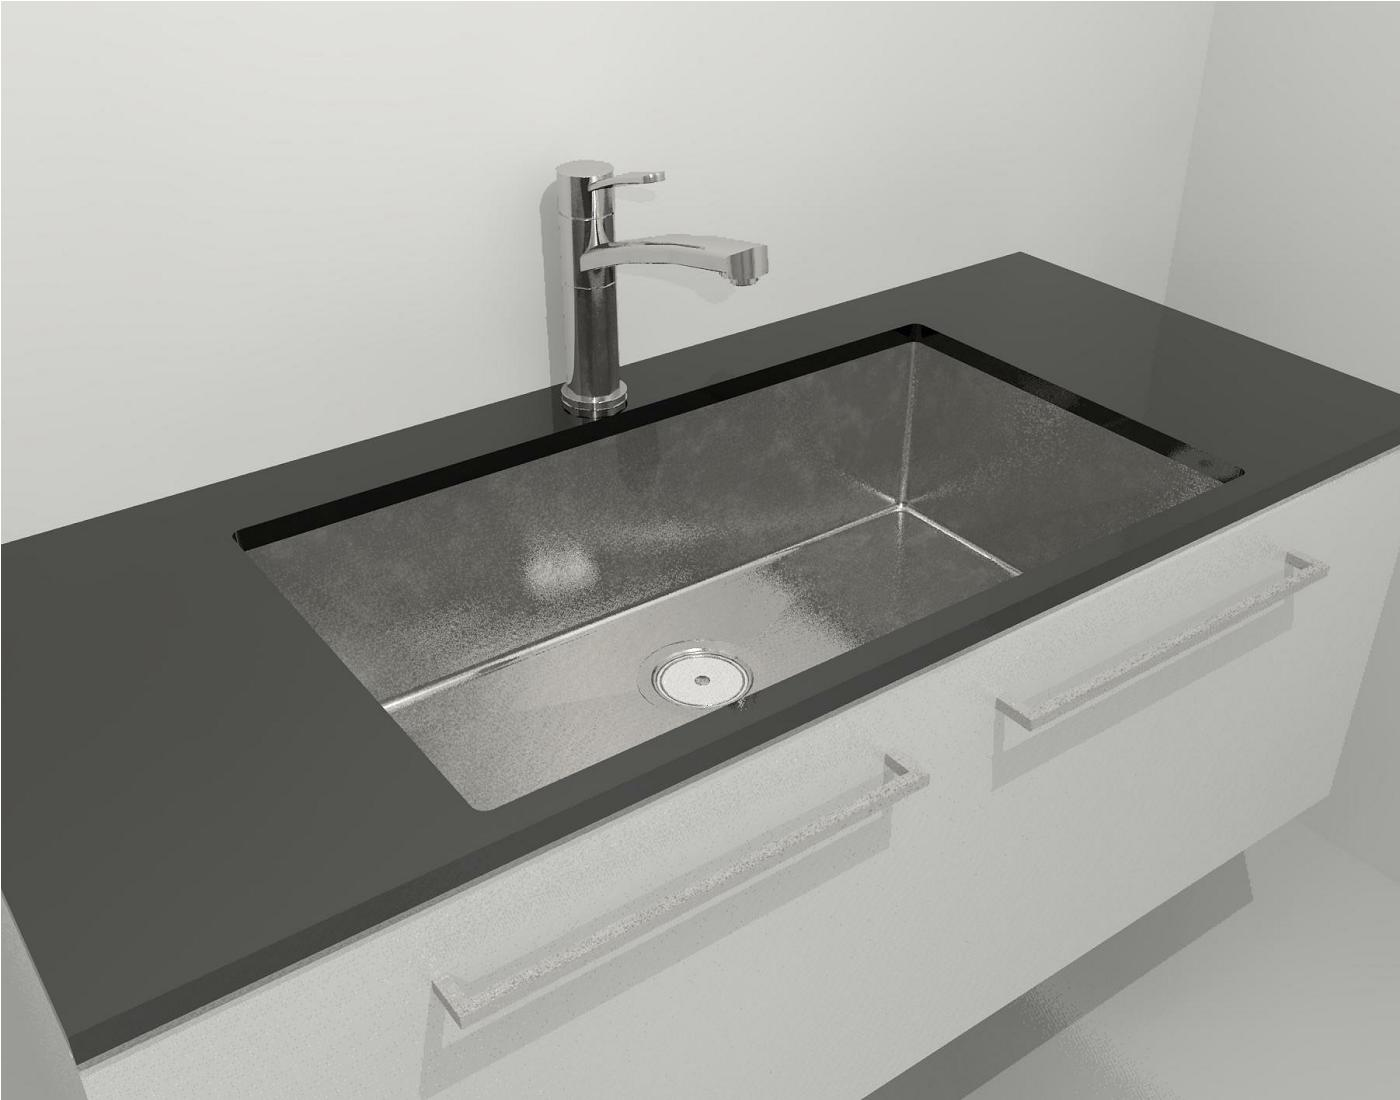 Clark Prism Single Large Bowl Undermount Overmount Sink